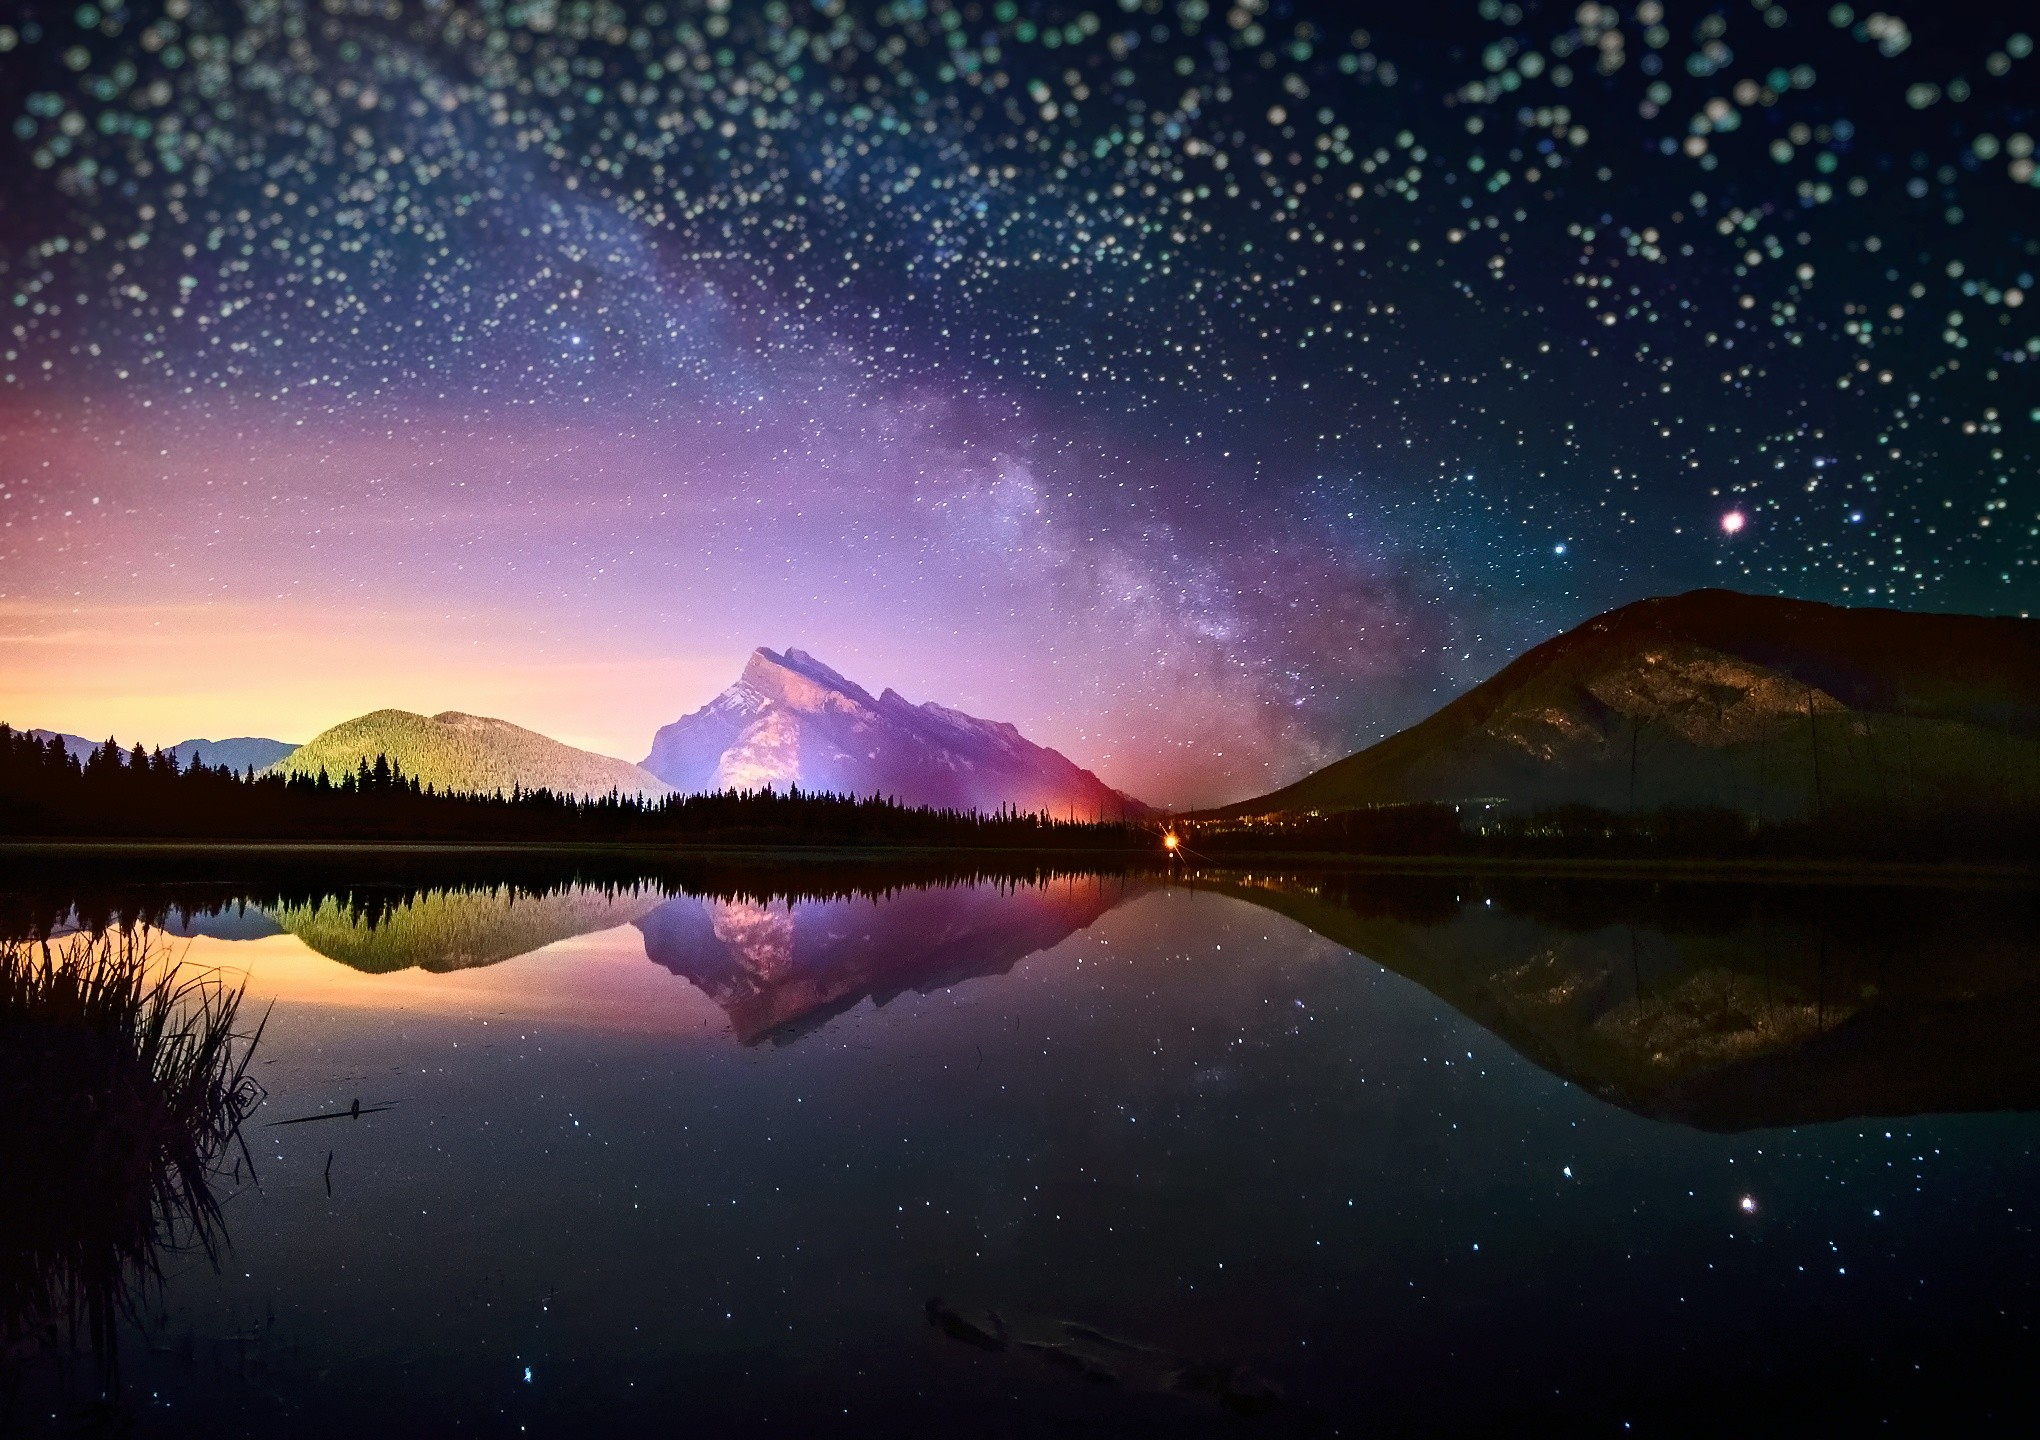 2040x1440 ...  316 Starry Sky HD Wallpapers Backgrounds | Wallpaper Aby